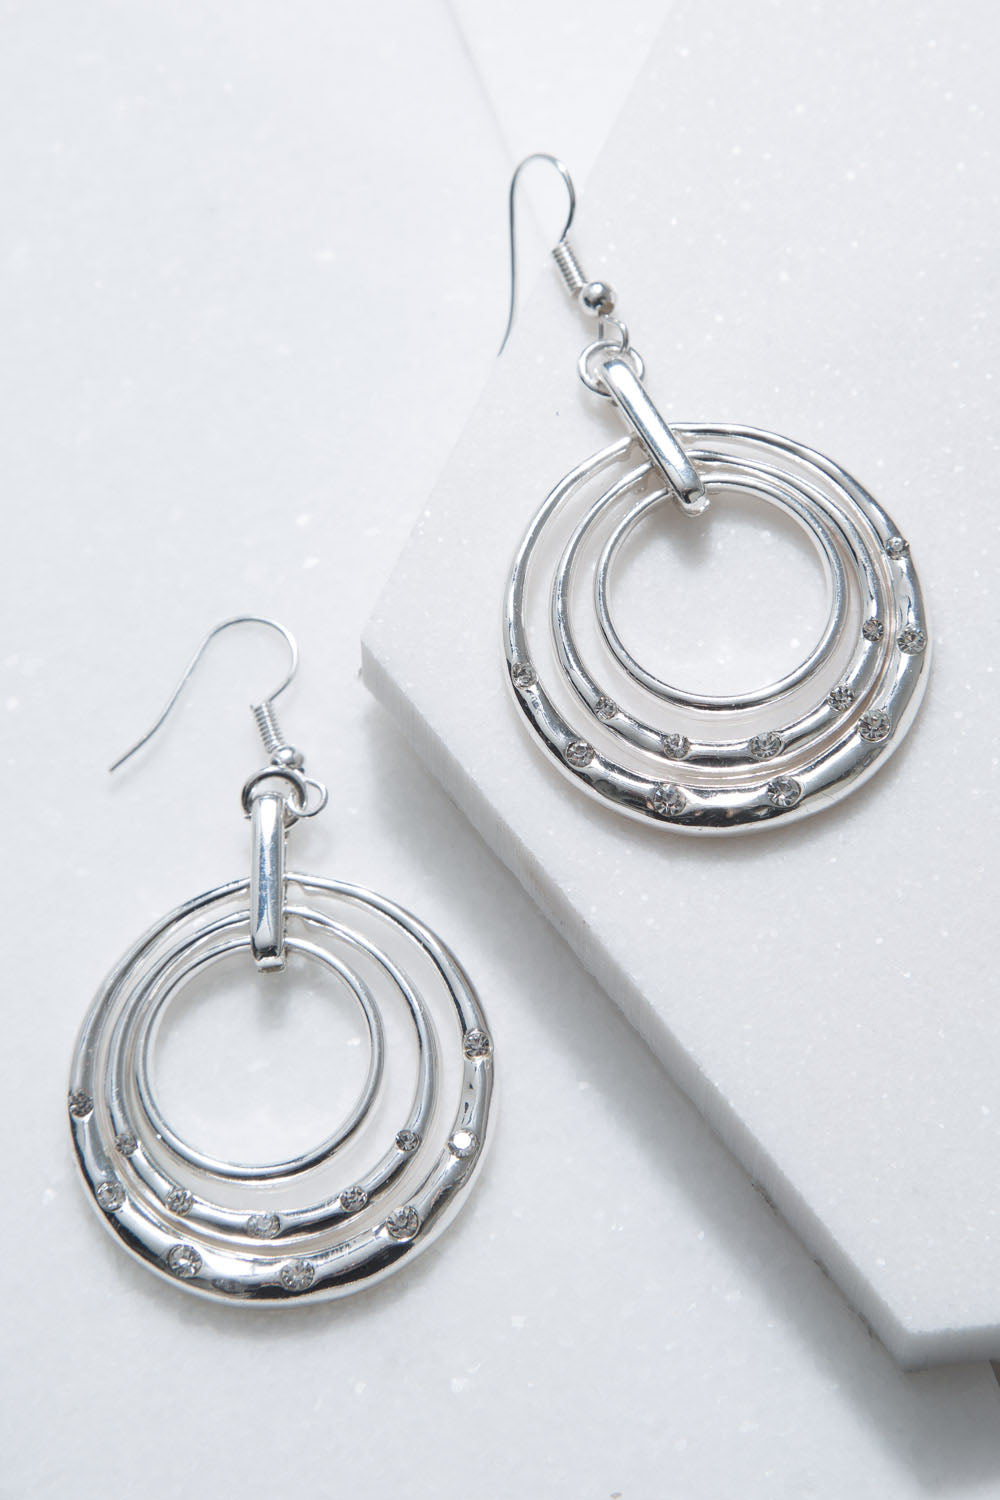 Type 4 Ringception Earrings